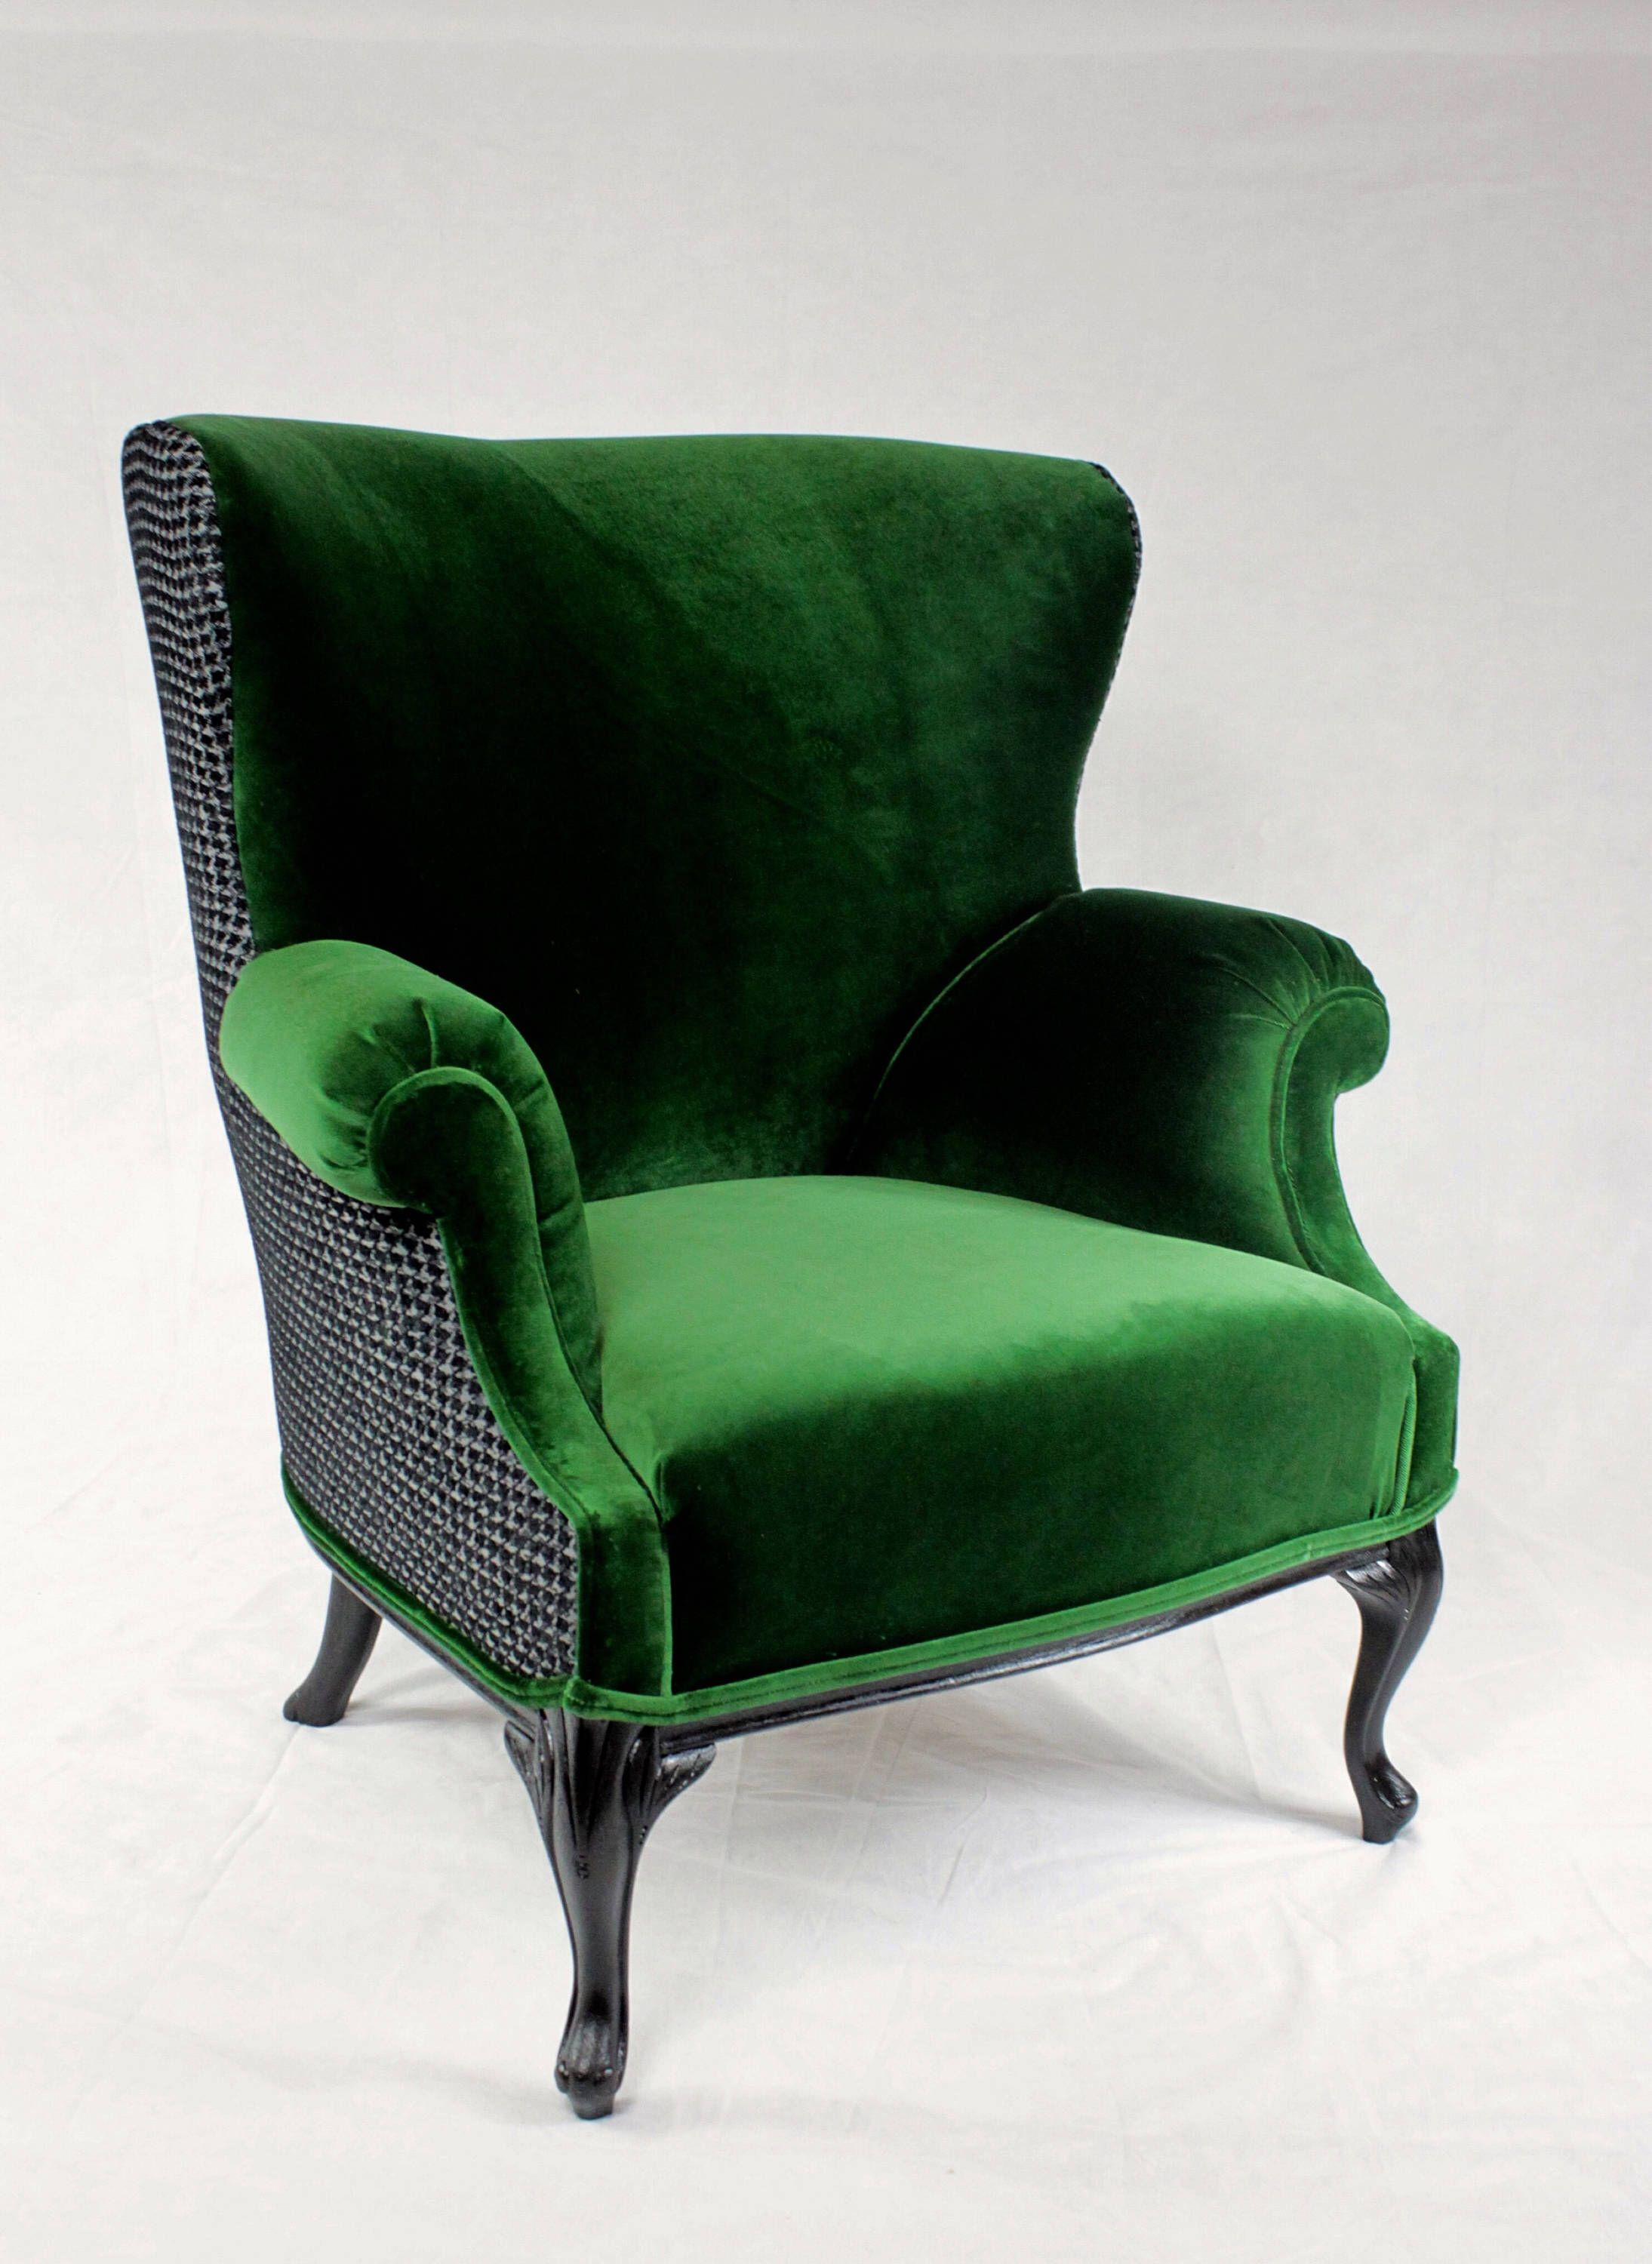 Vintage Emerald Green Velvet Rounded Wing Back Chair With